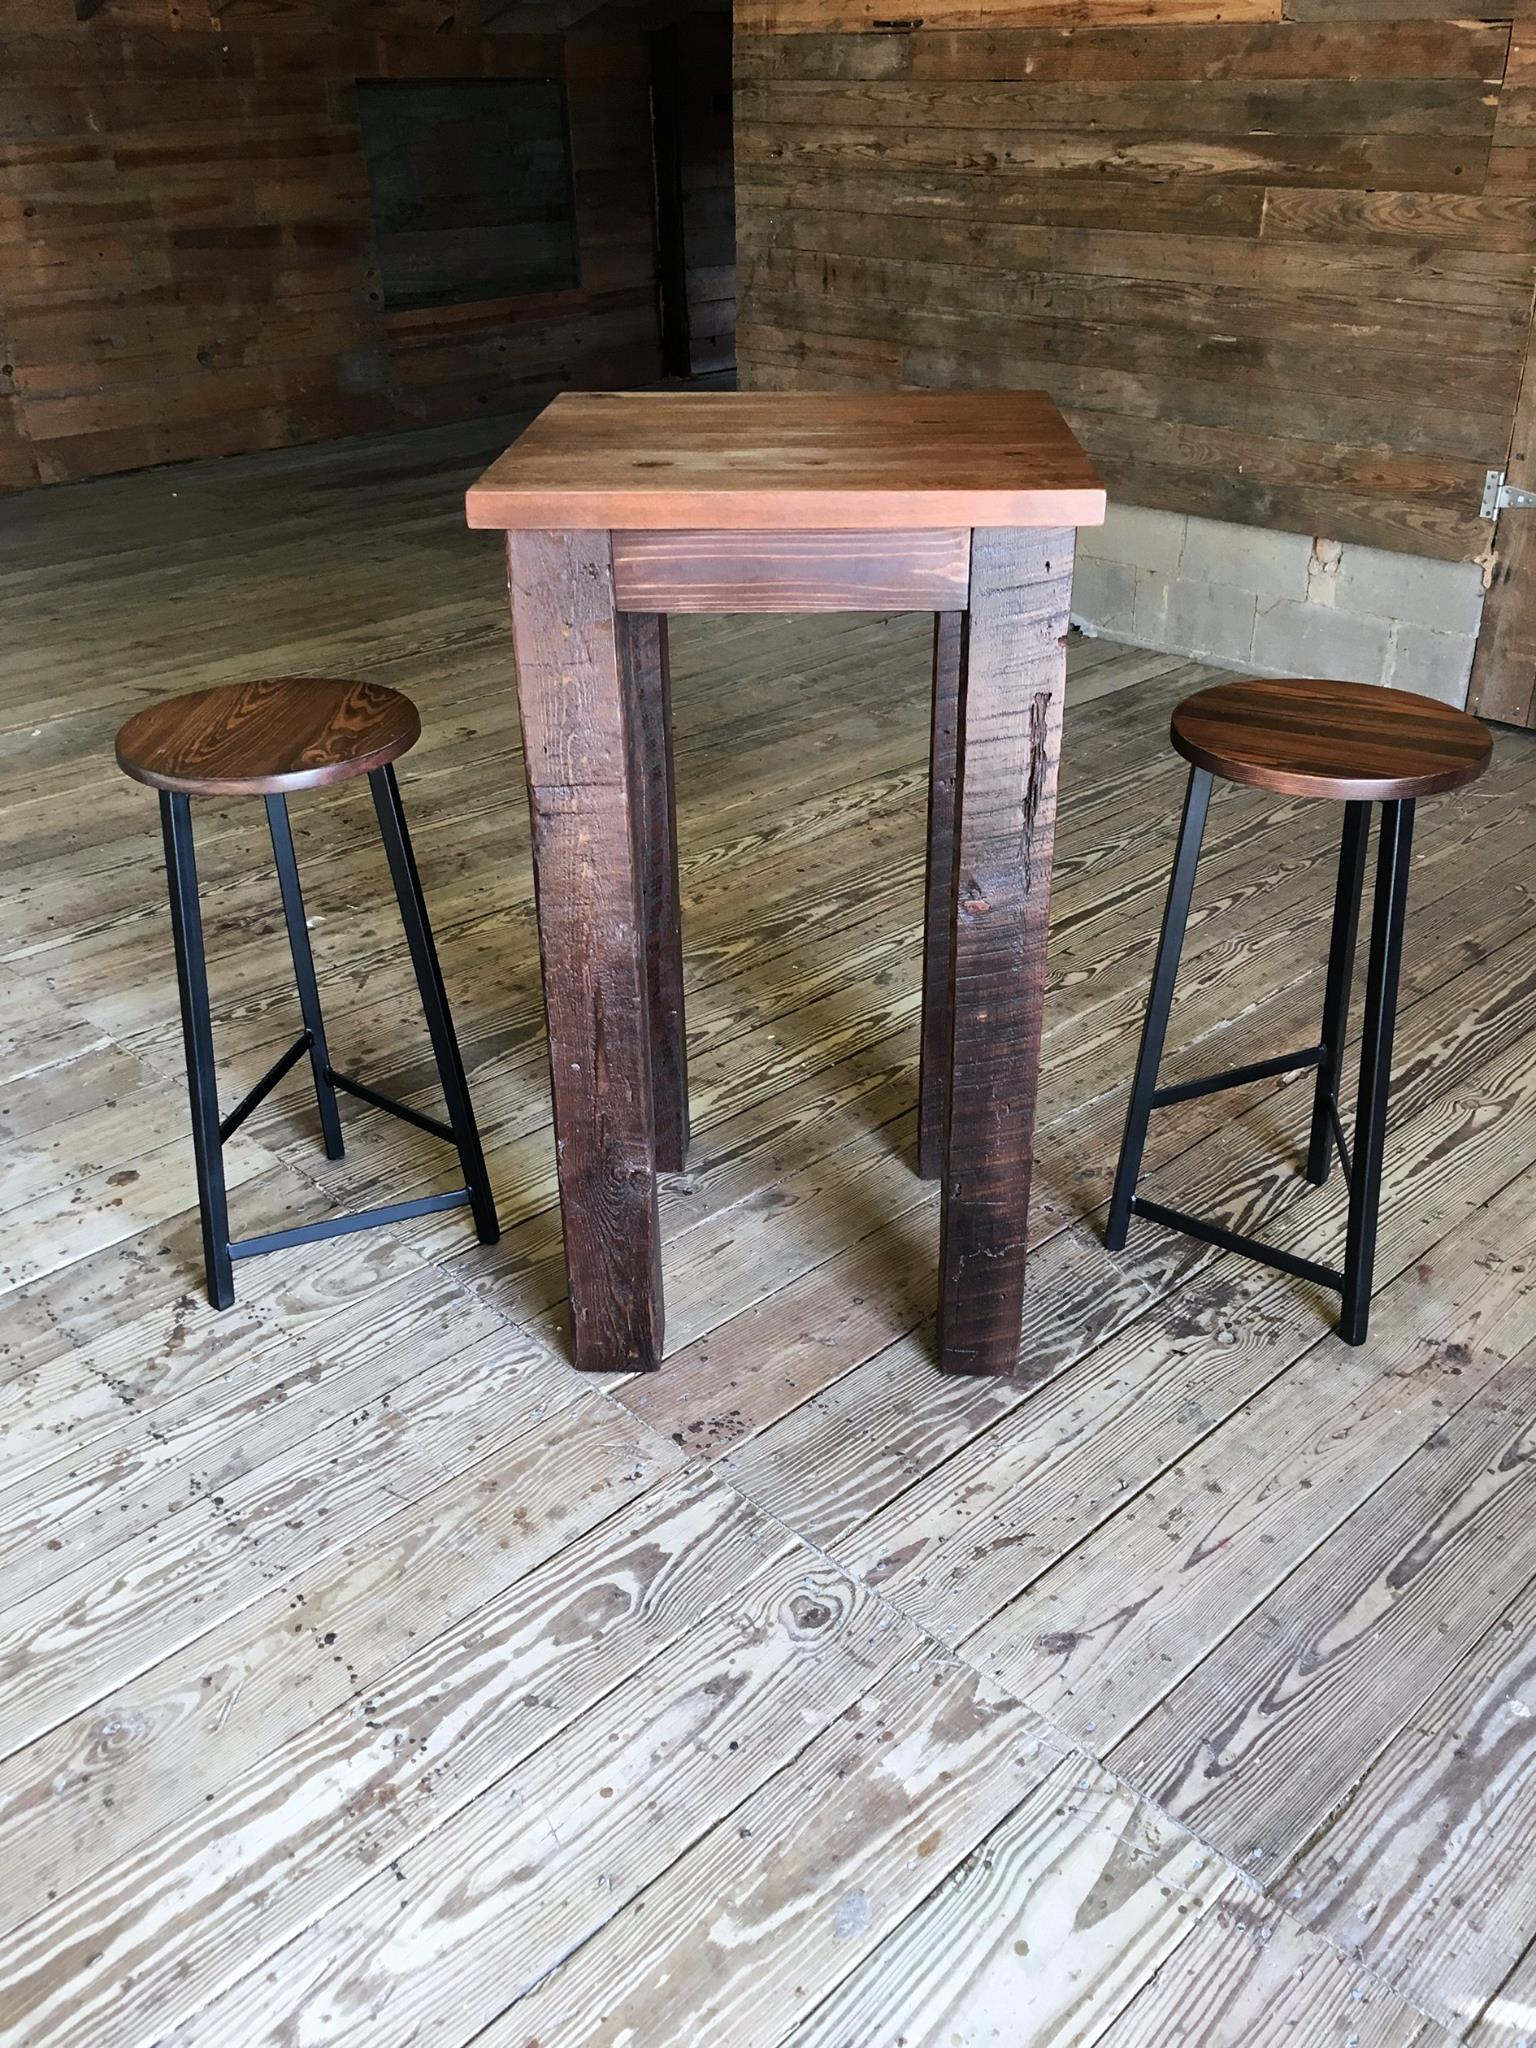 Small table and matching bar stools